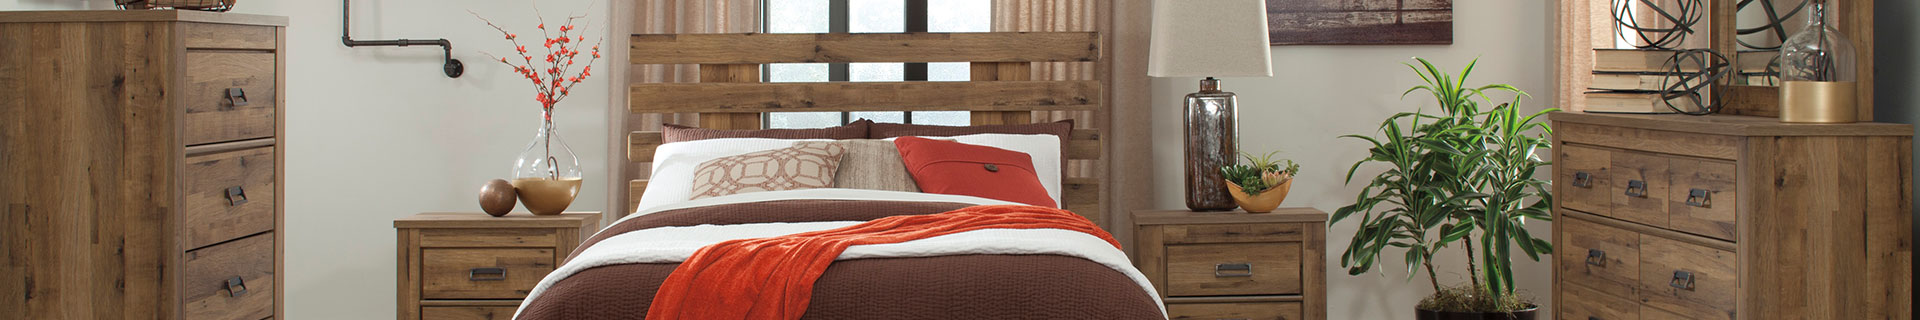 Contemporary, wooden bed set.